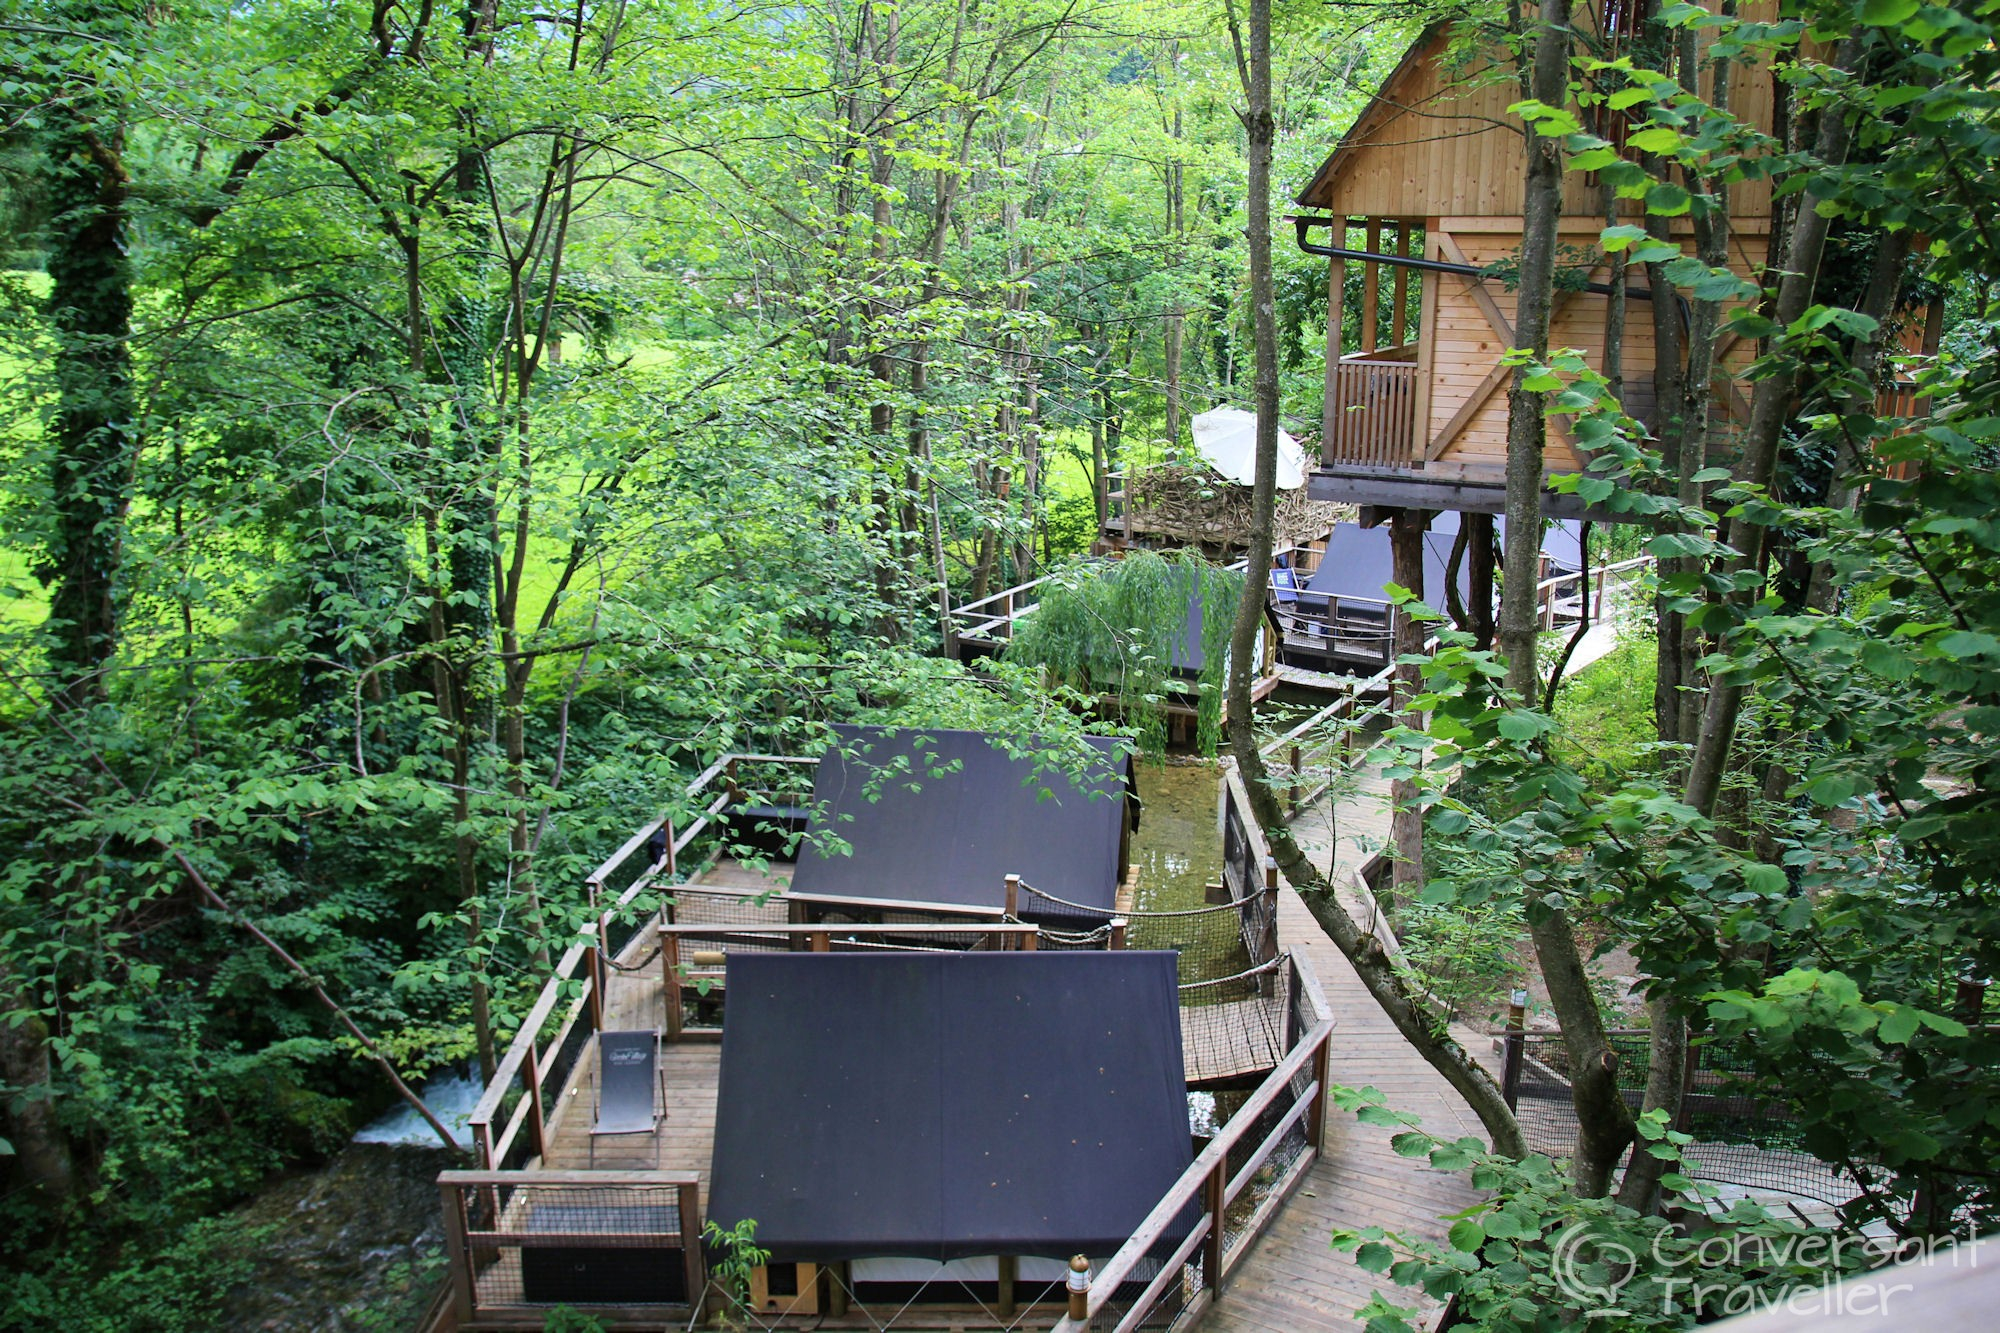 Modular Treehouse Sleeping At Garden Village Bled - Conversant Traveller throughout Garden Village Lake Bled